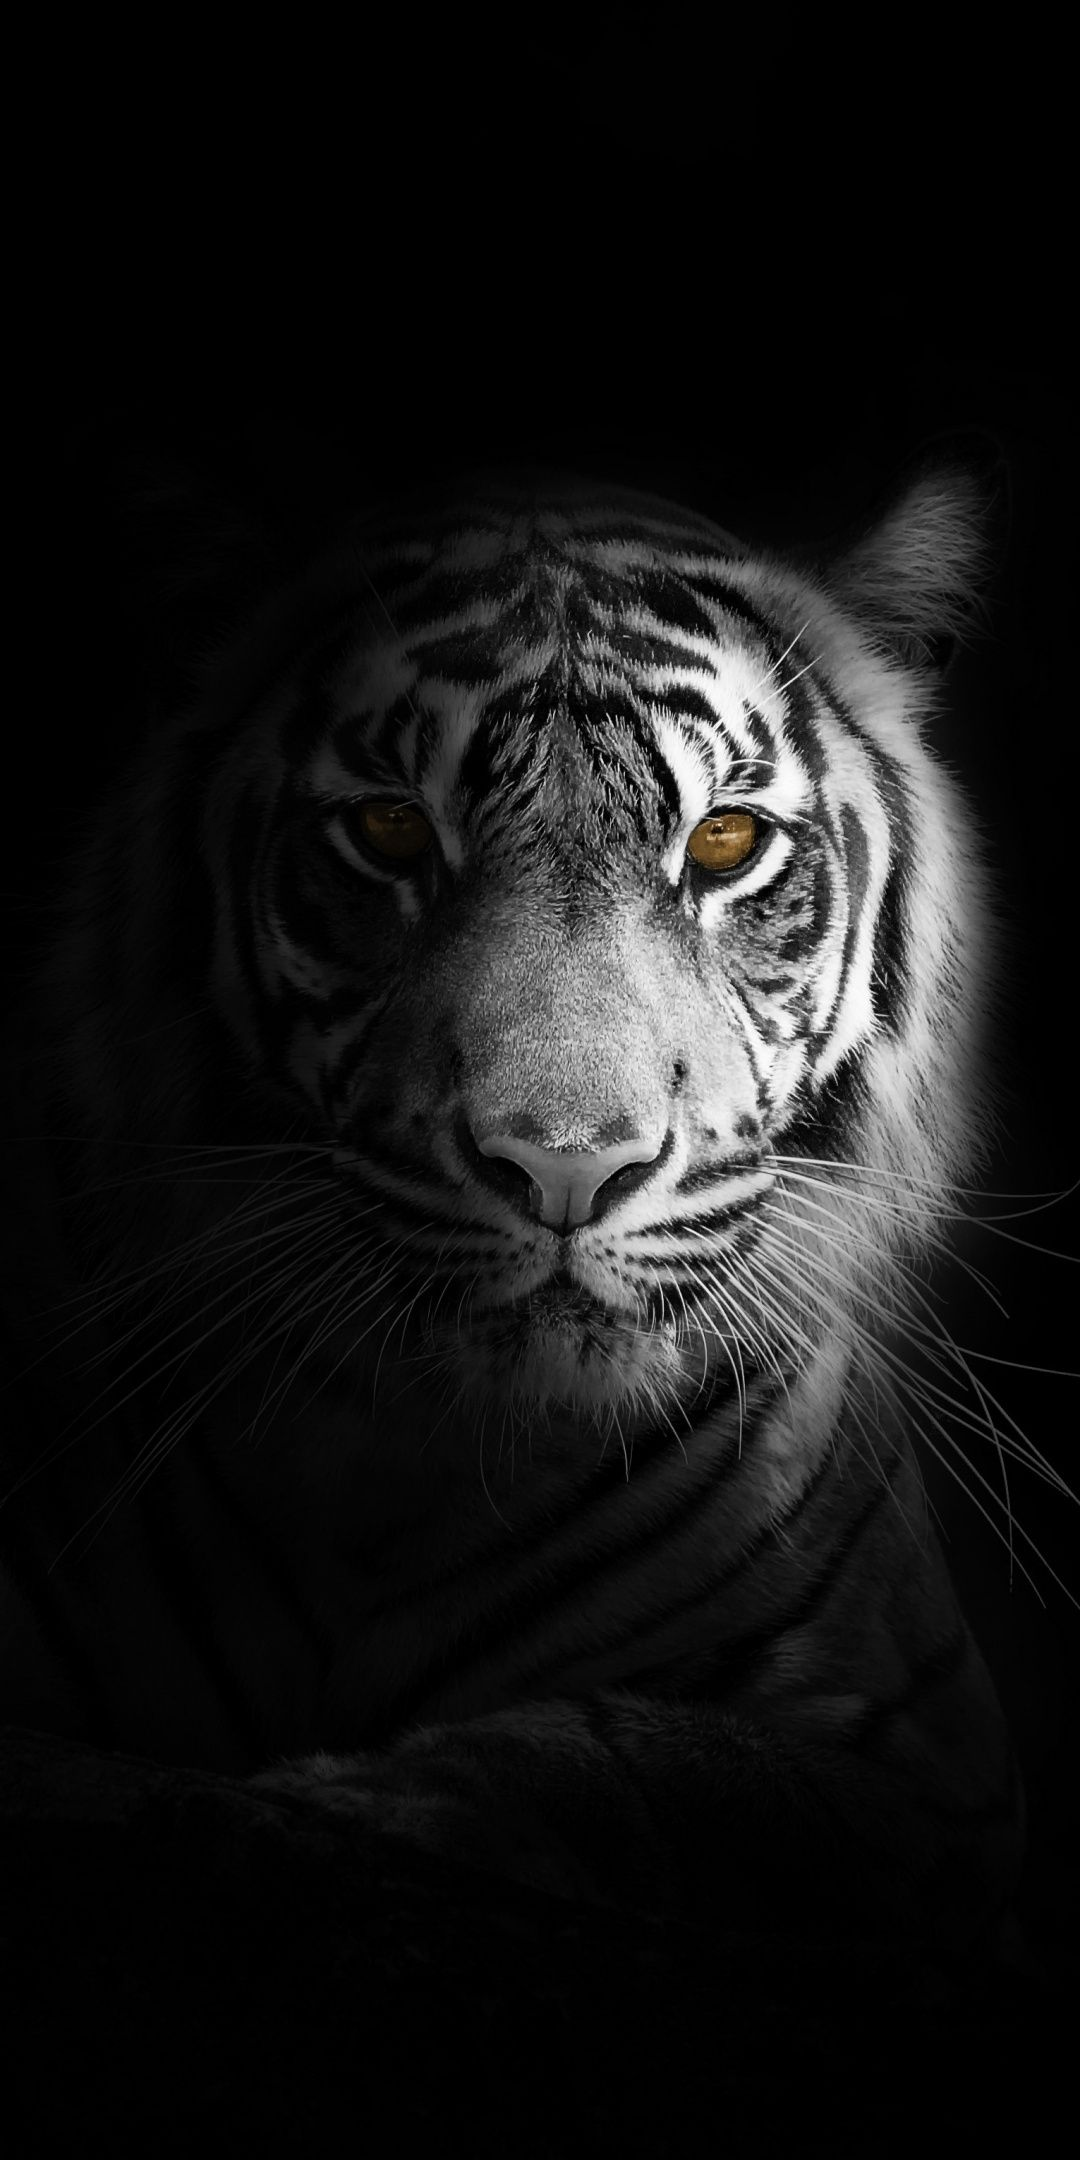 Portrait Minimal White Tiger Dark Wallpaper Tiger Wallpaper